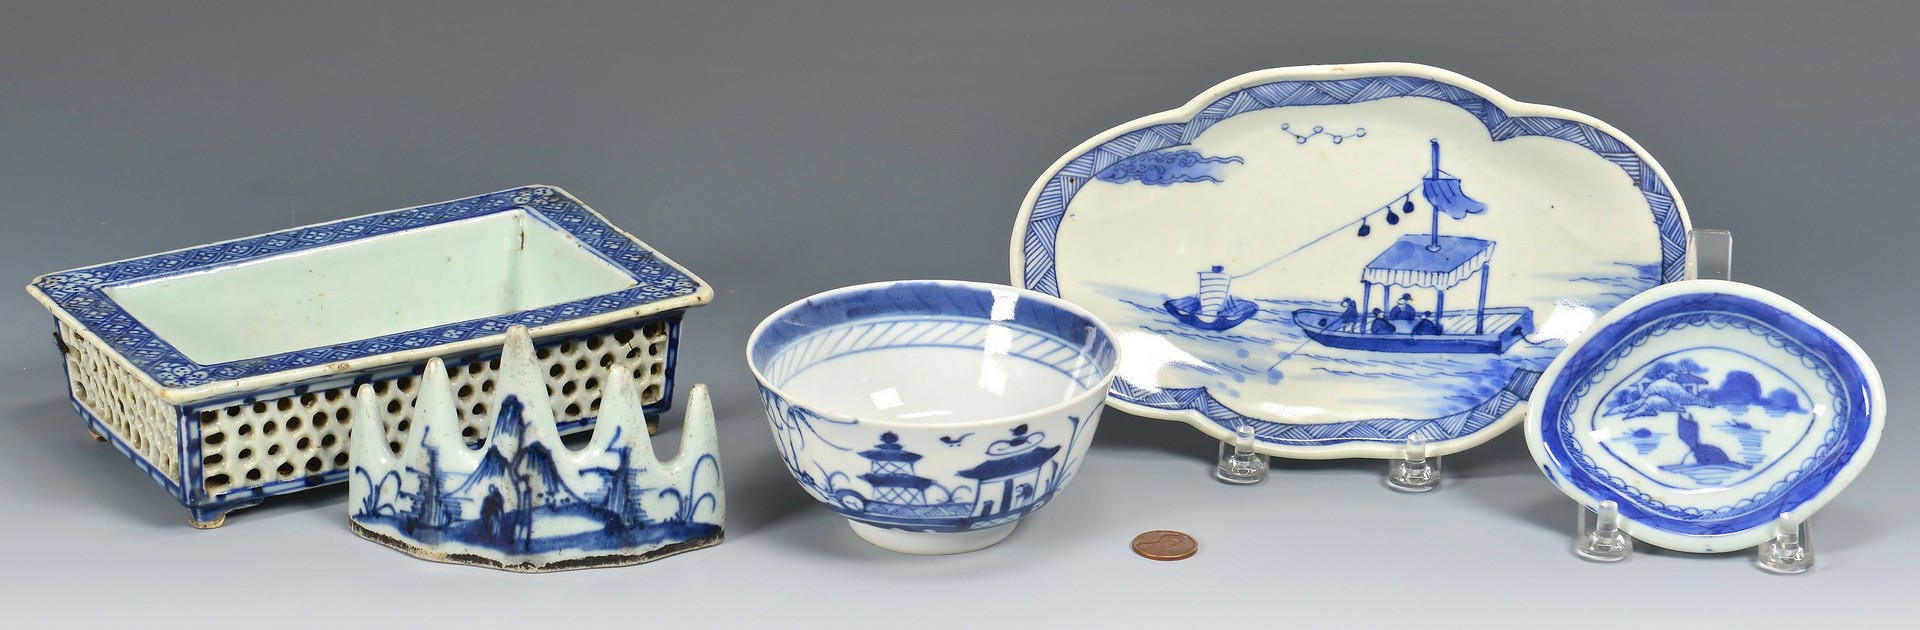 Lot 22: 5 Chinese Blue and White Porcelain Items